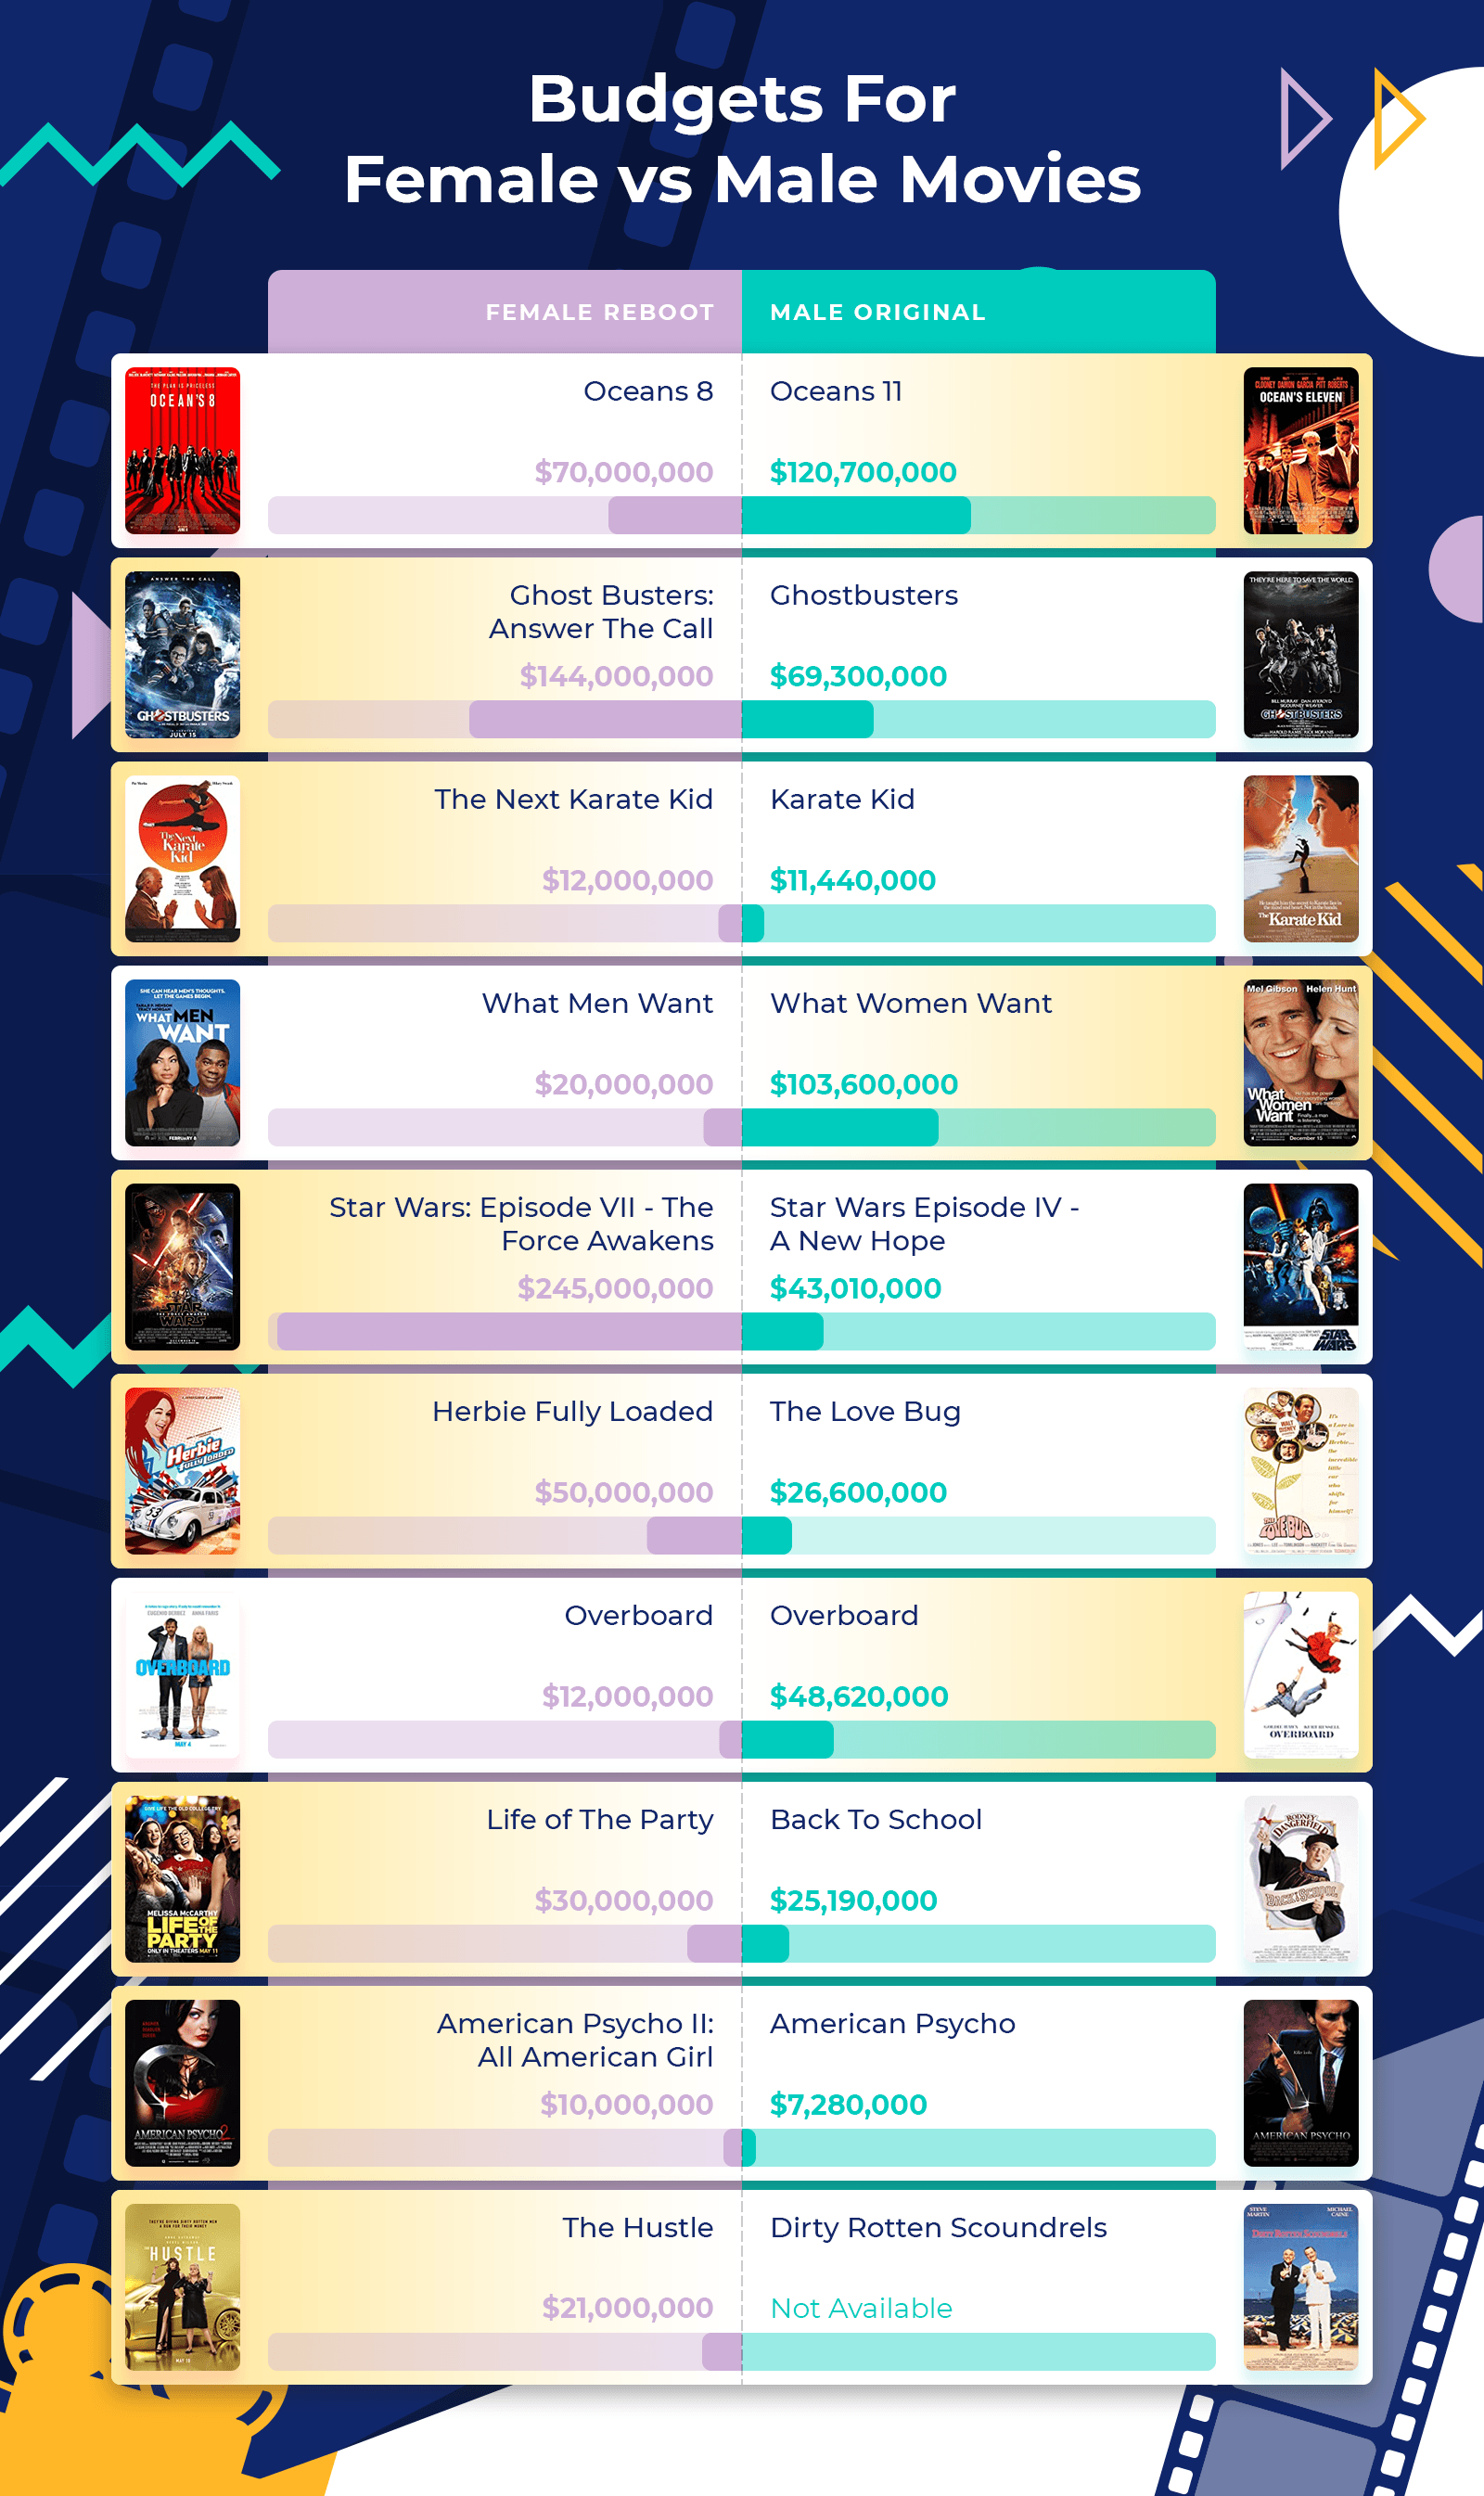 infographic - Budgets For Female vs Male Movies